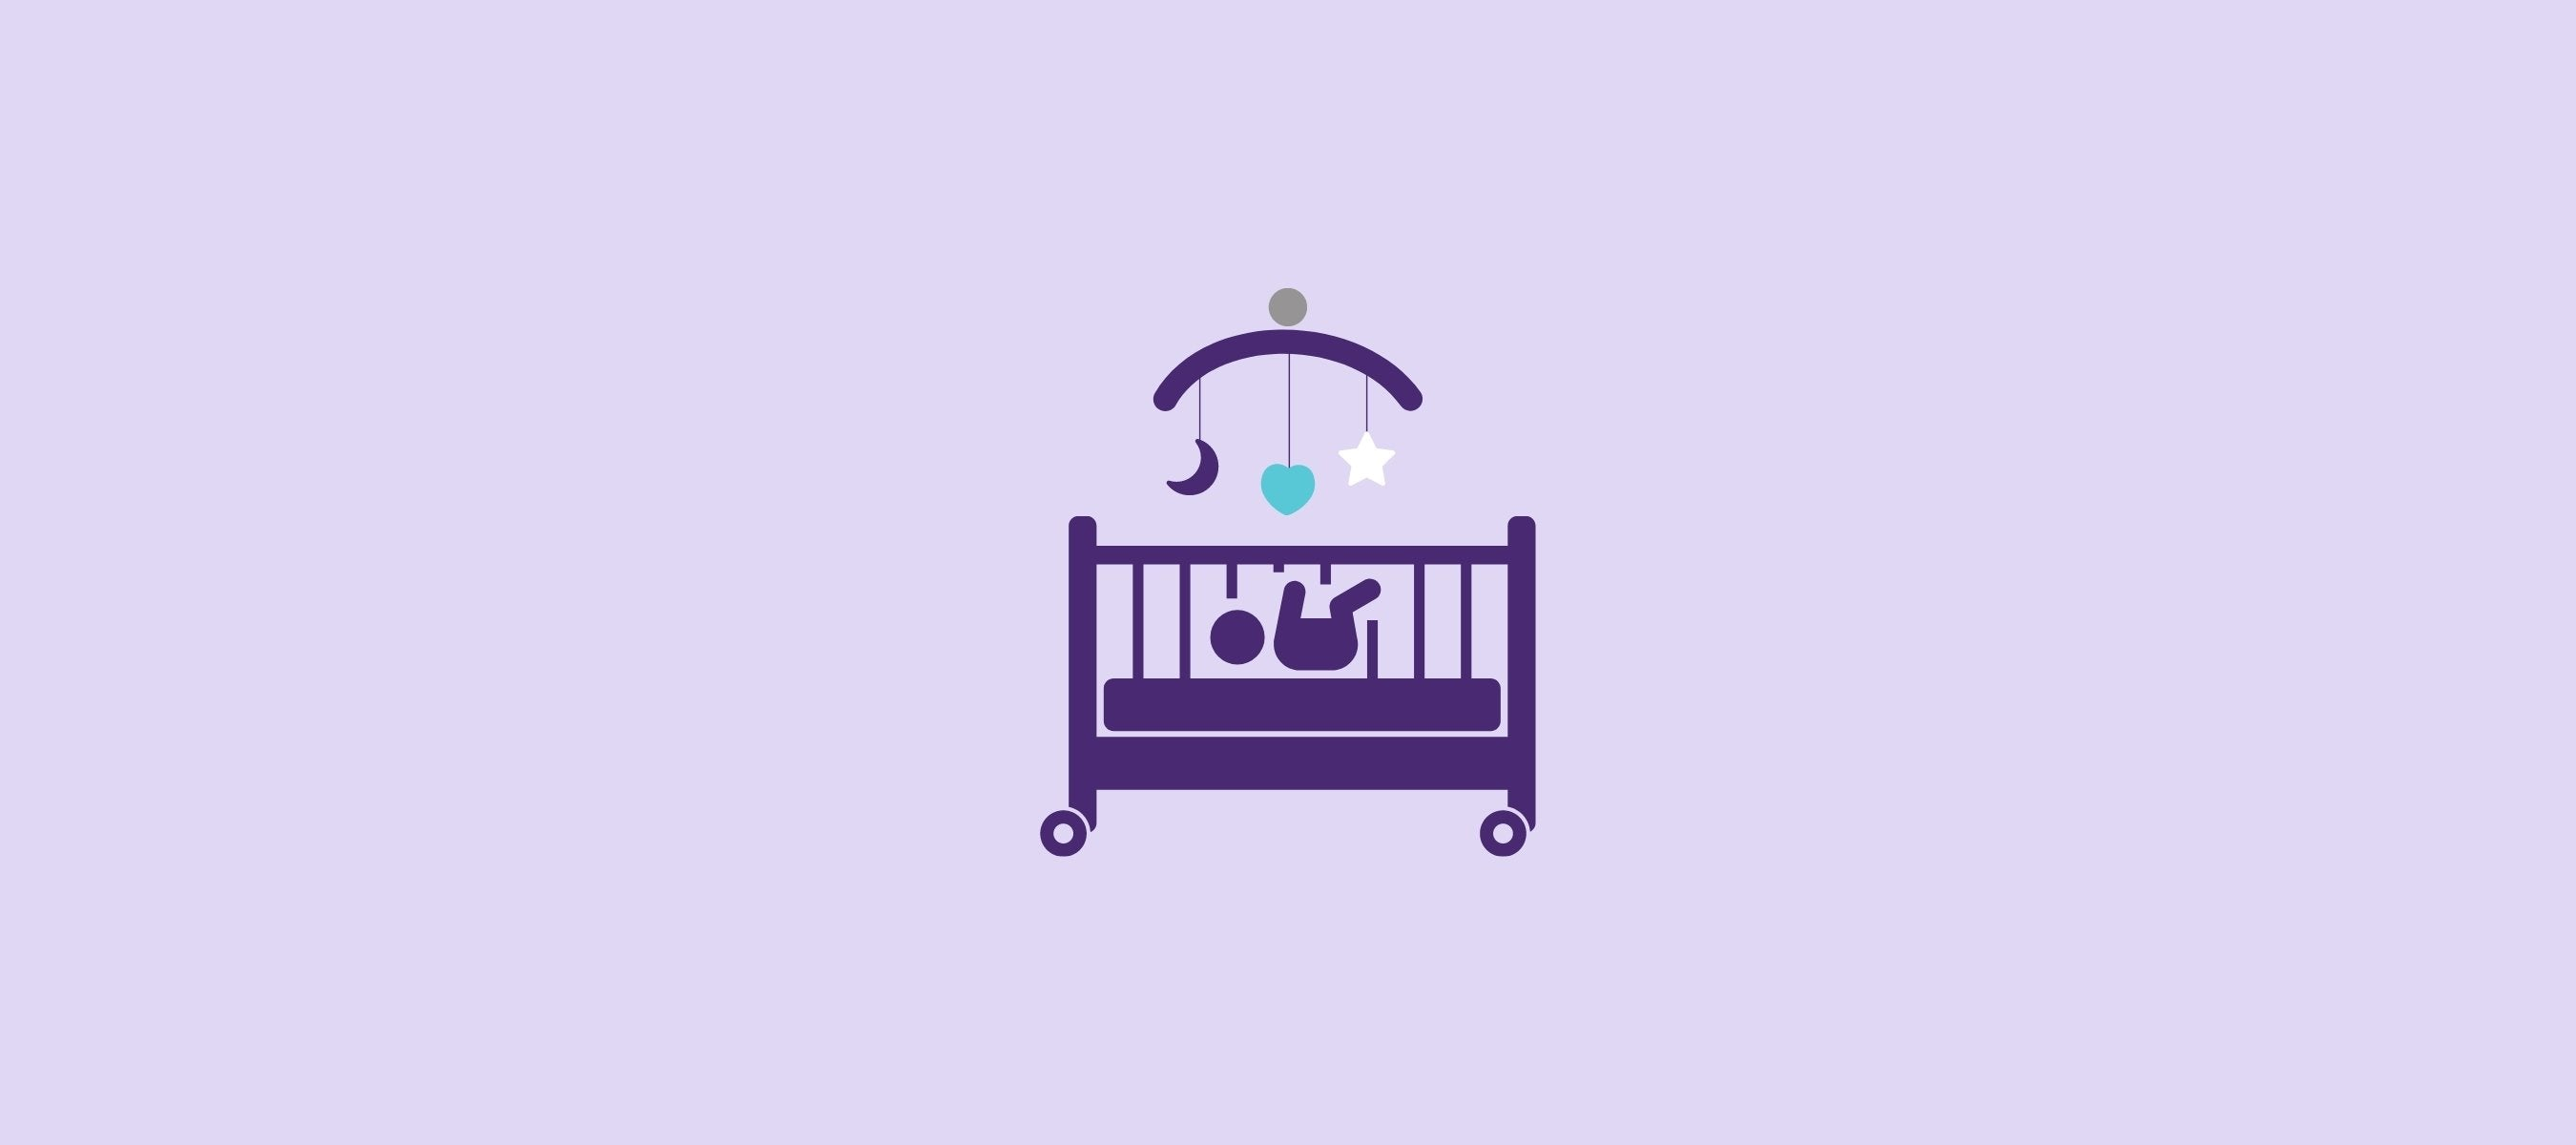 Baby lying in bed with mobile toys hanging above the cradle